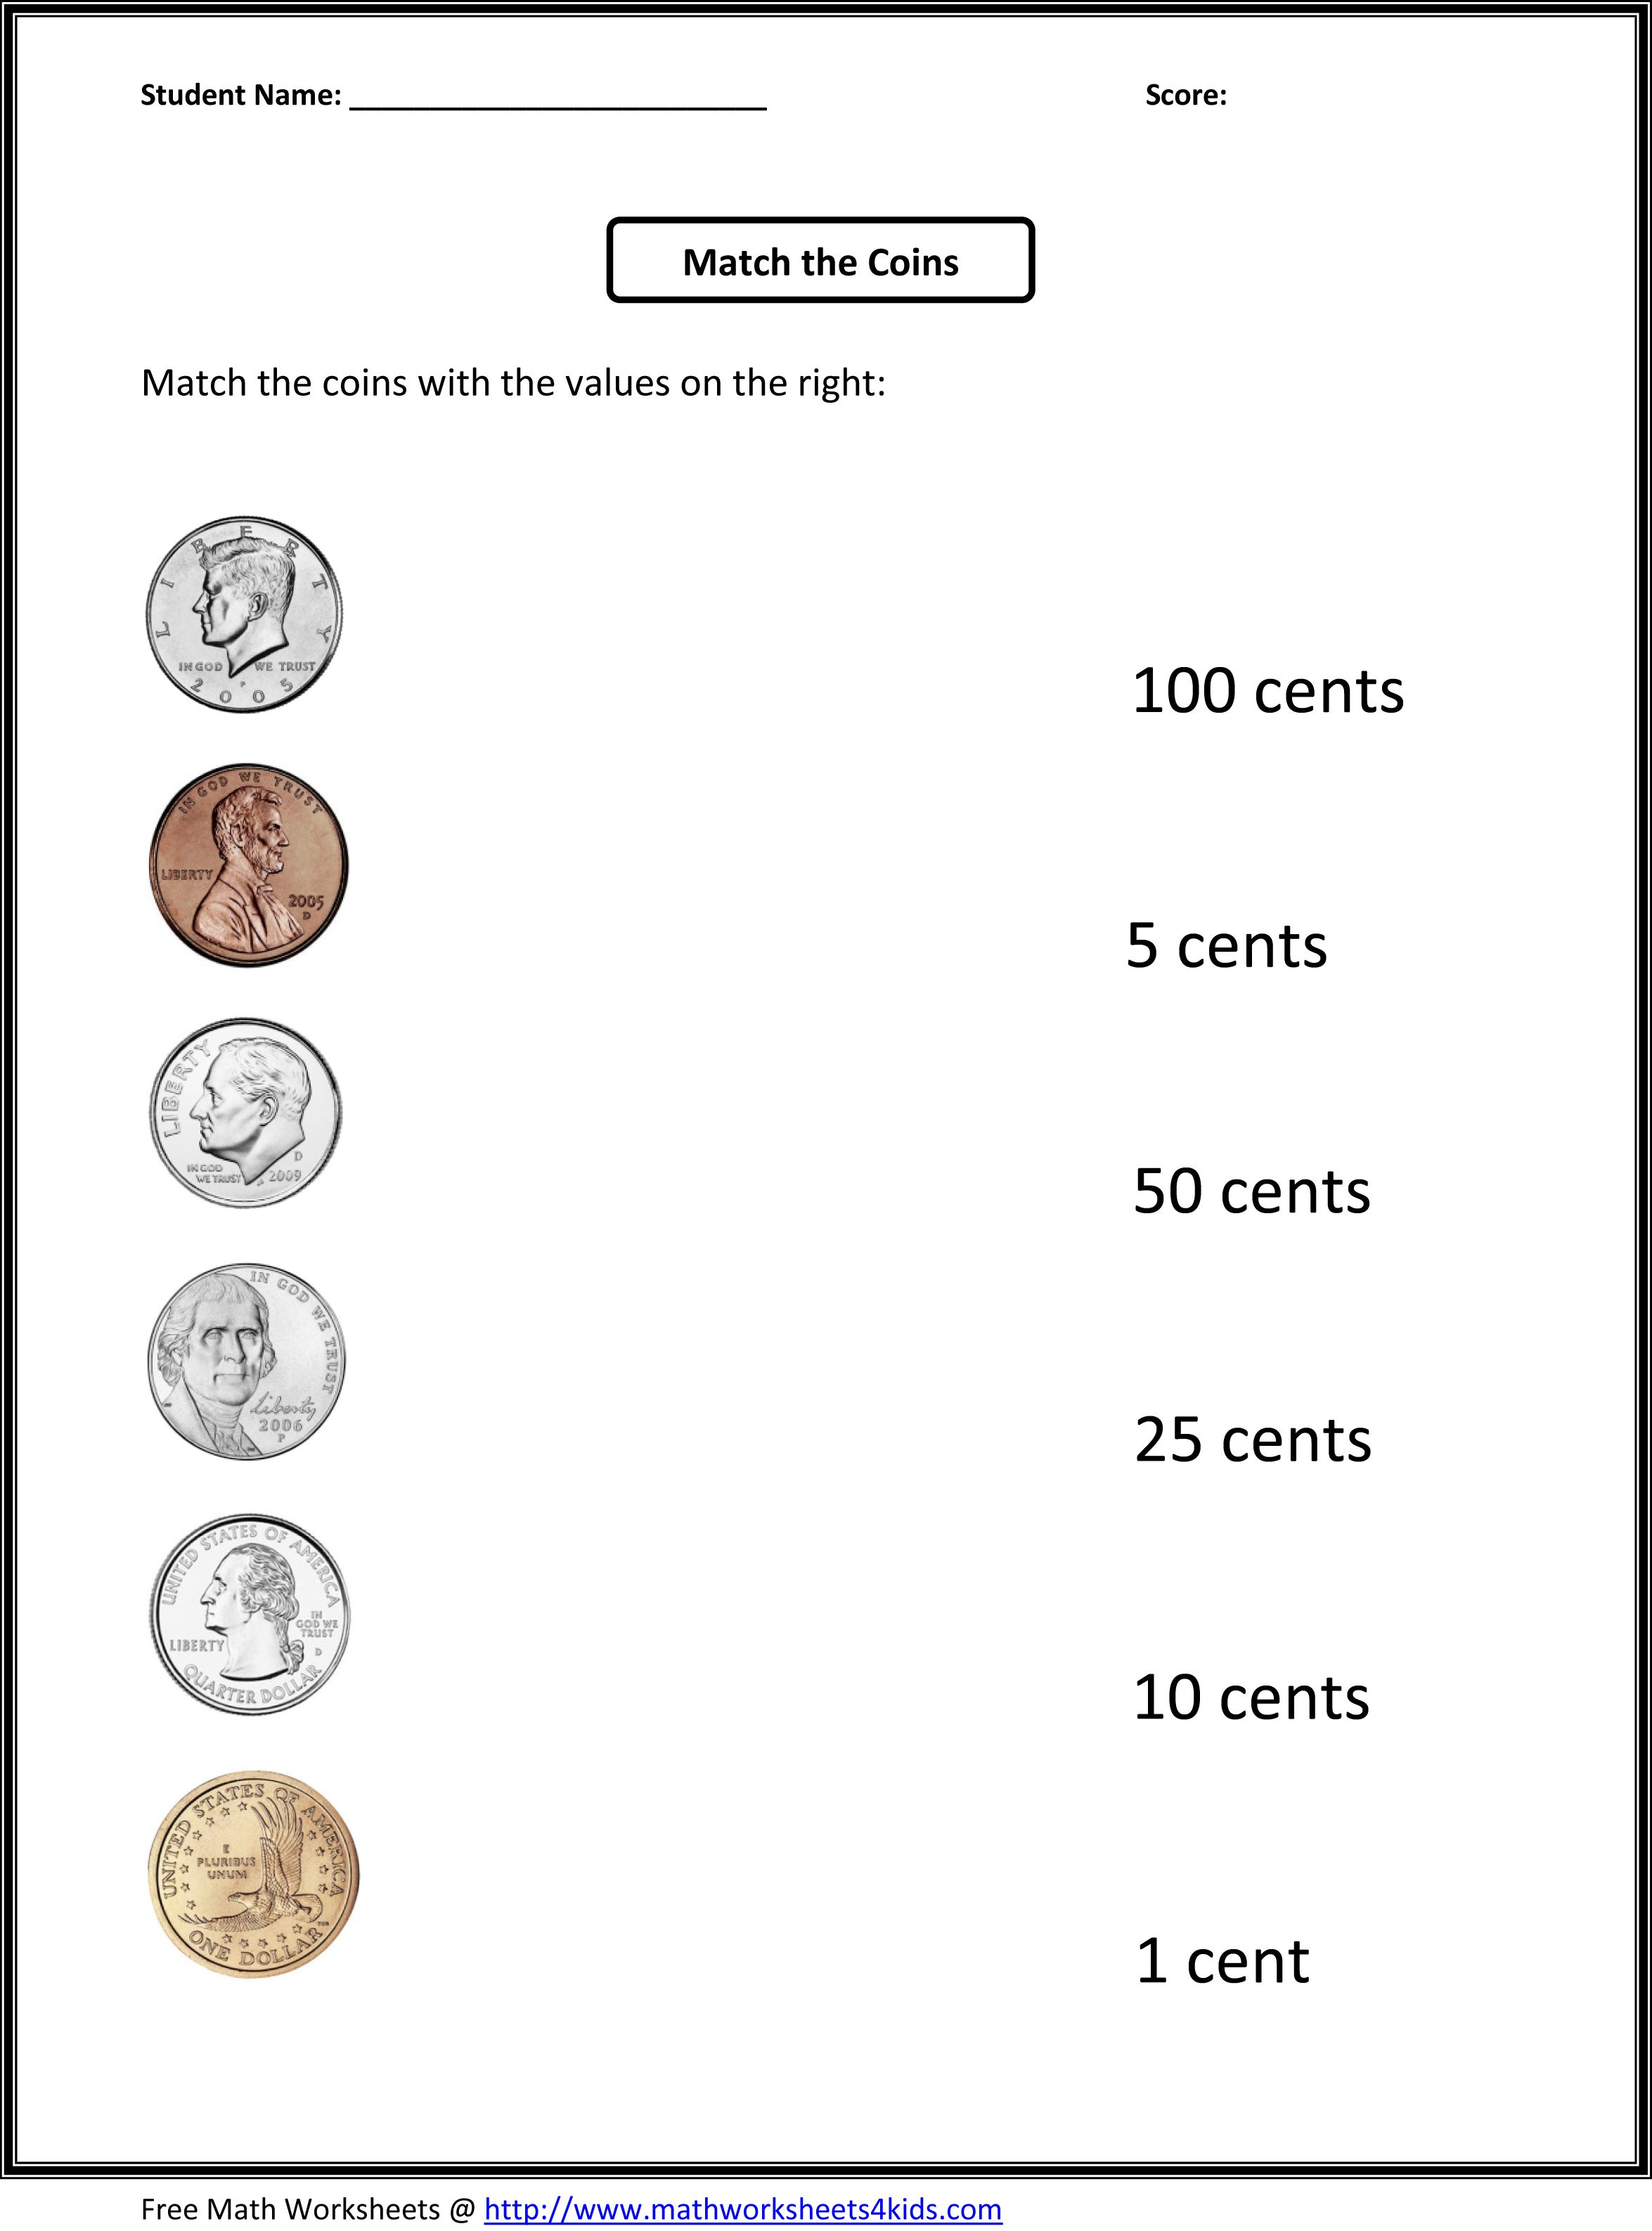 30 Identifying Coins And Coin Values Worksheets Kitty